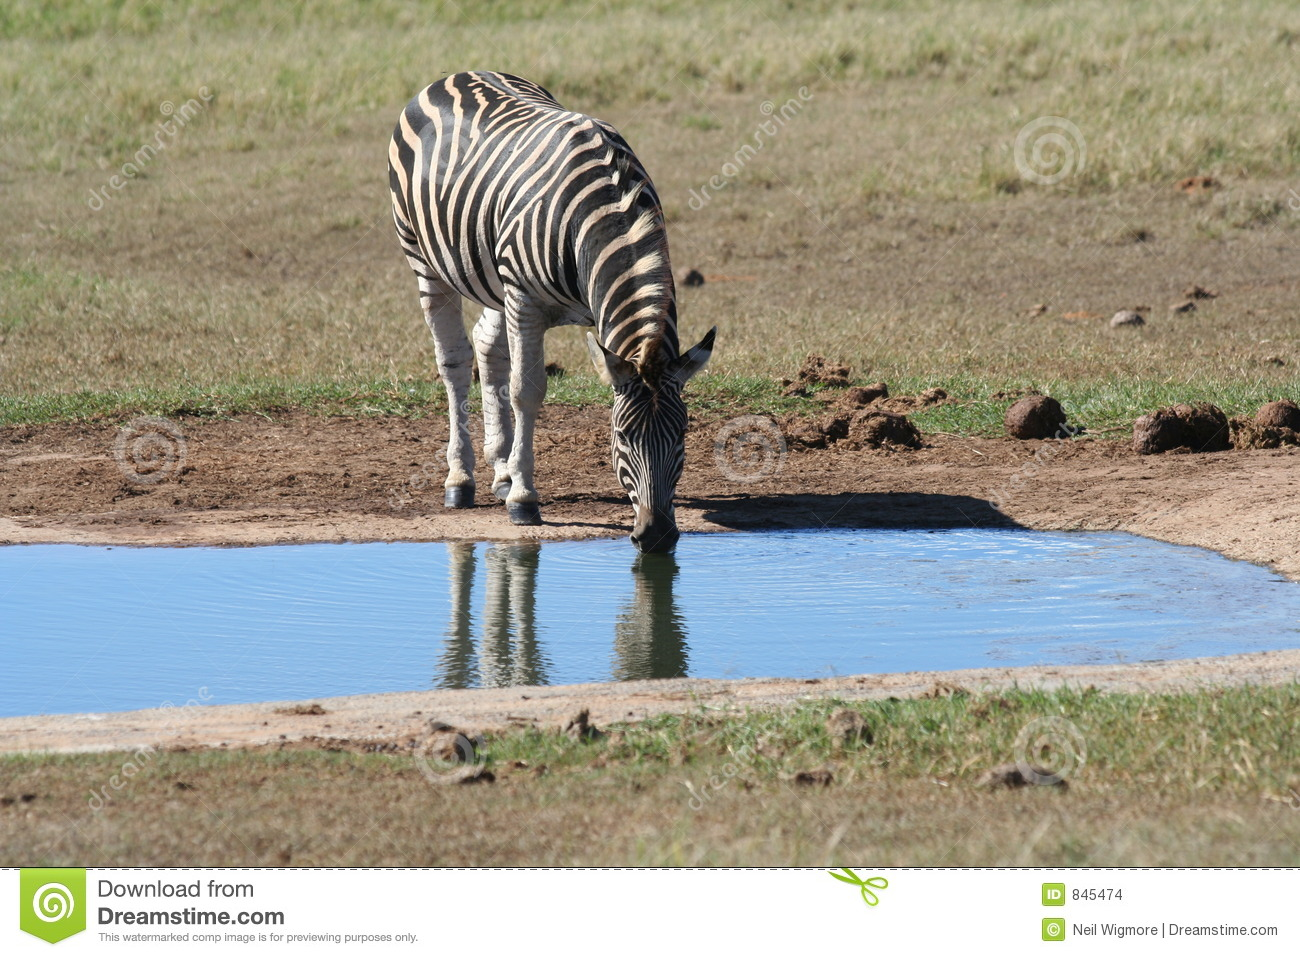 Zebra at the Wateringhole